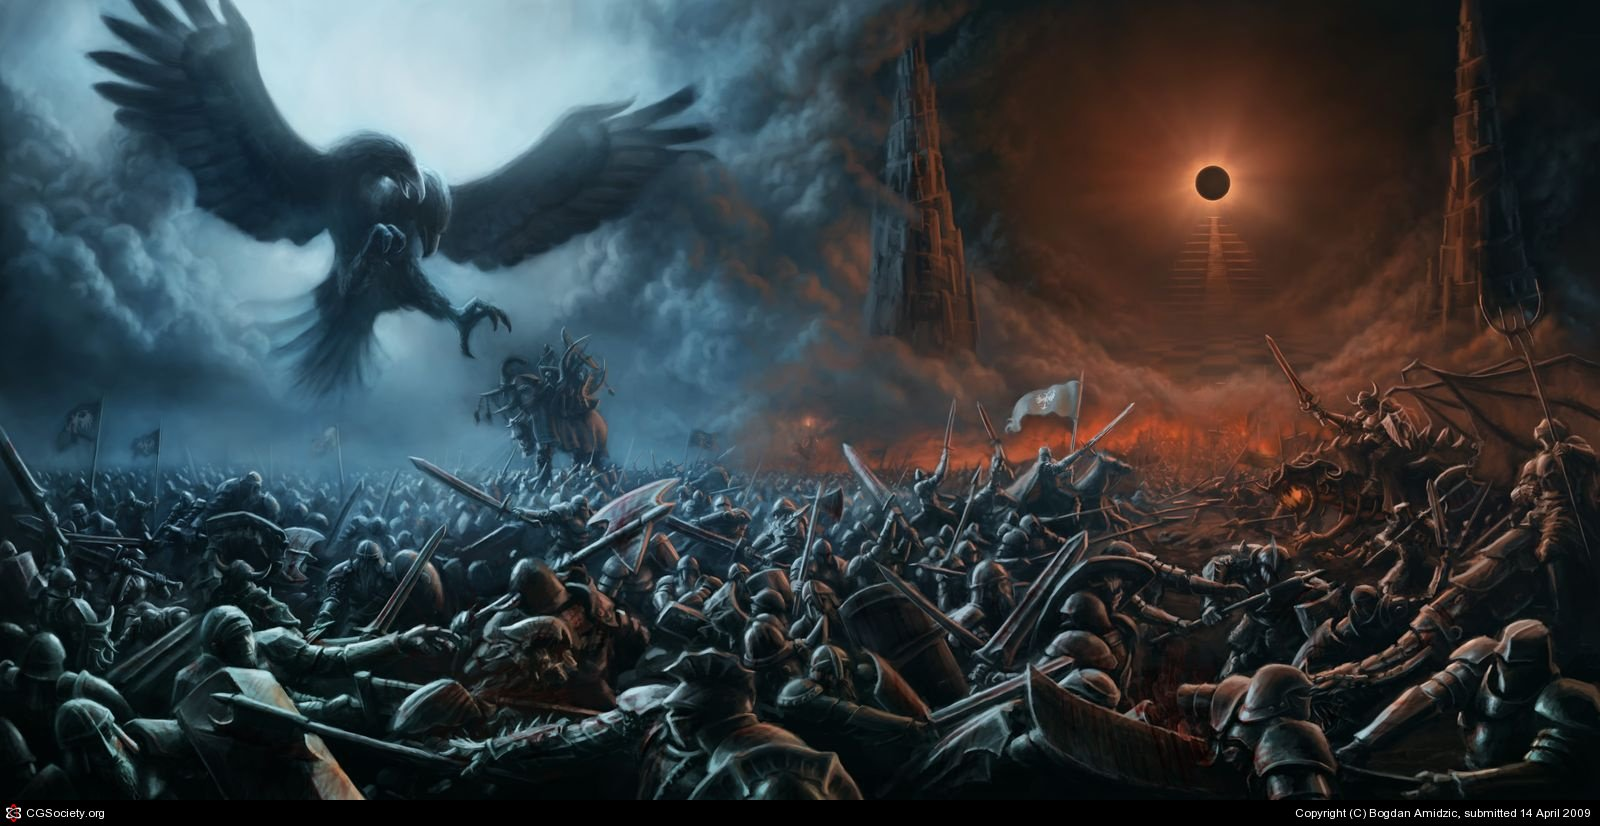 39 Hell Hd Wallpapers Background Images Wallpaper Abyss